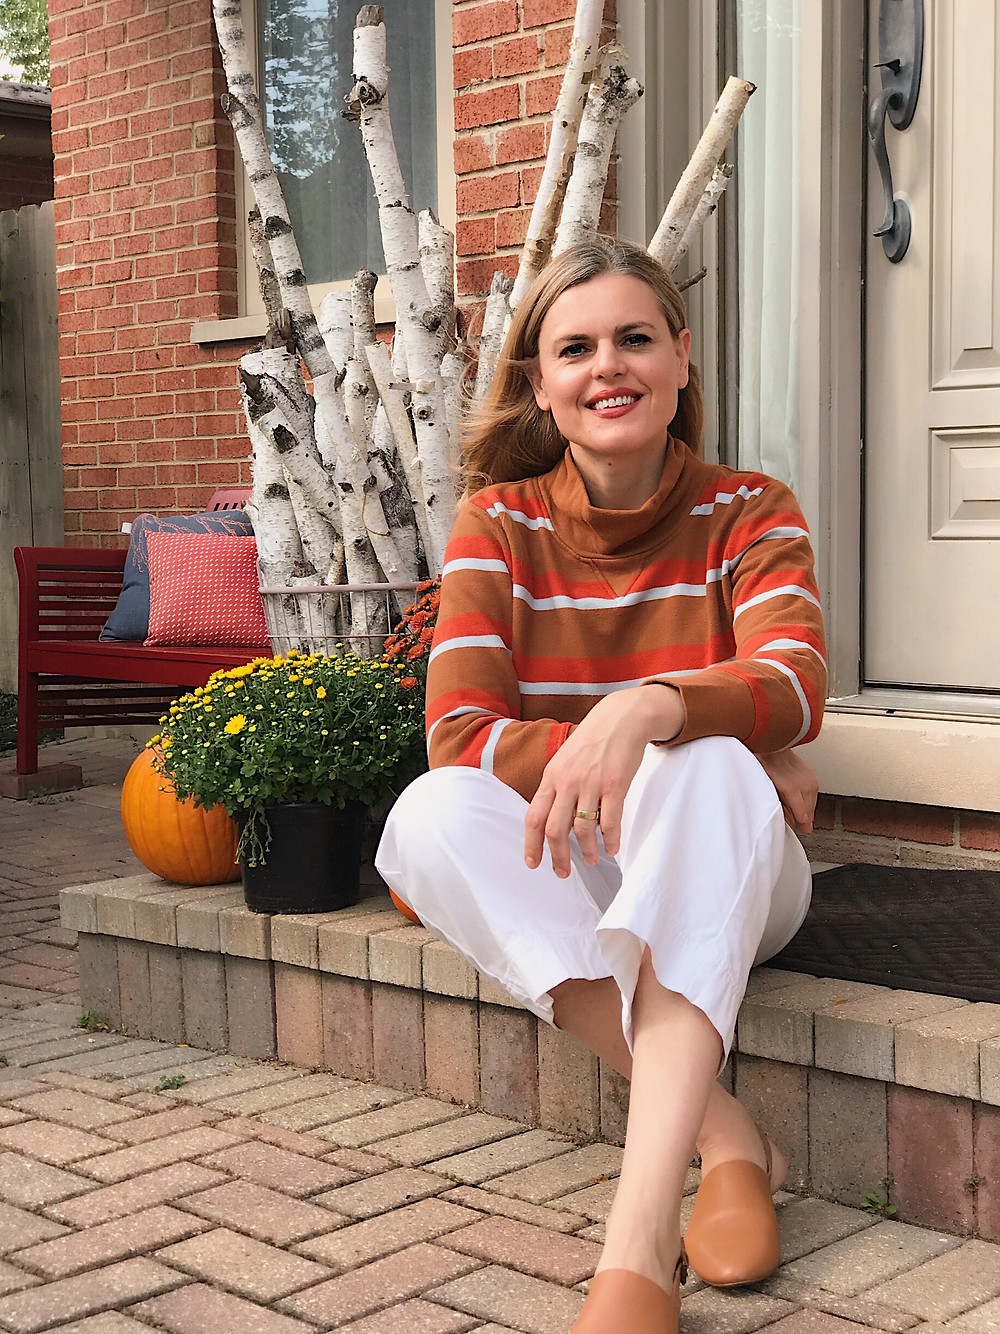 blond woman sitting  on a front step with mums and pumpkins